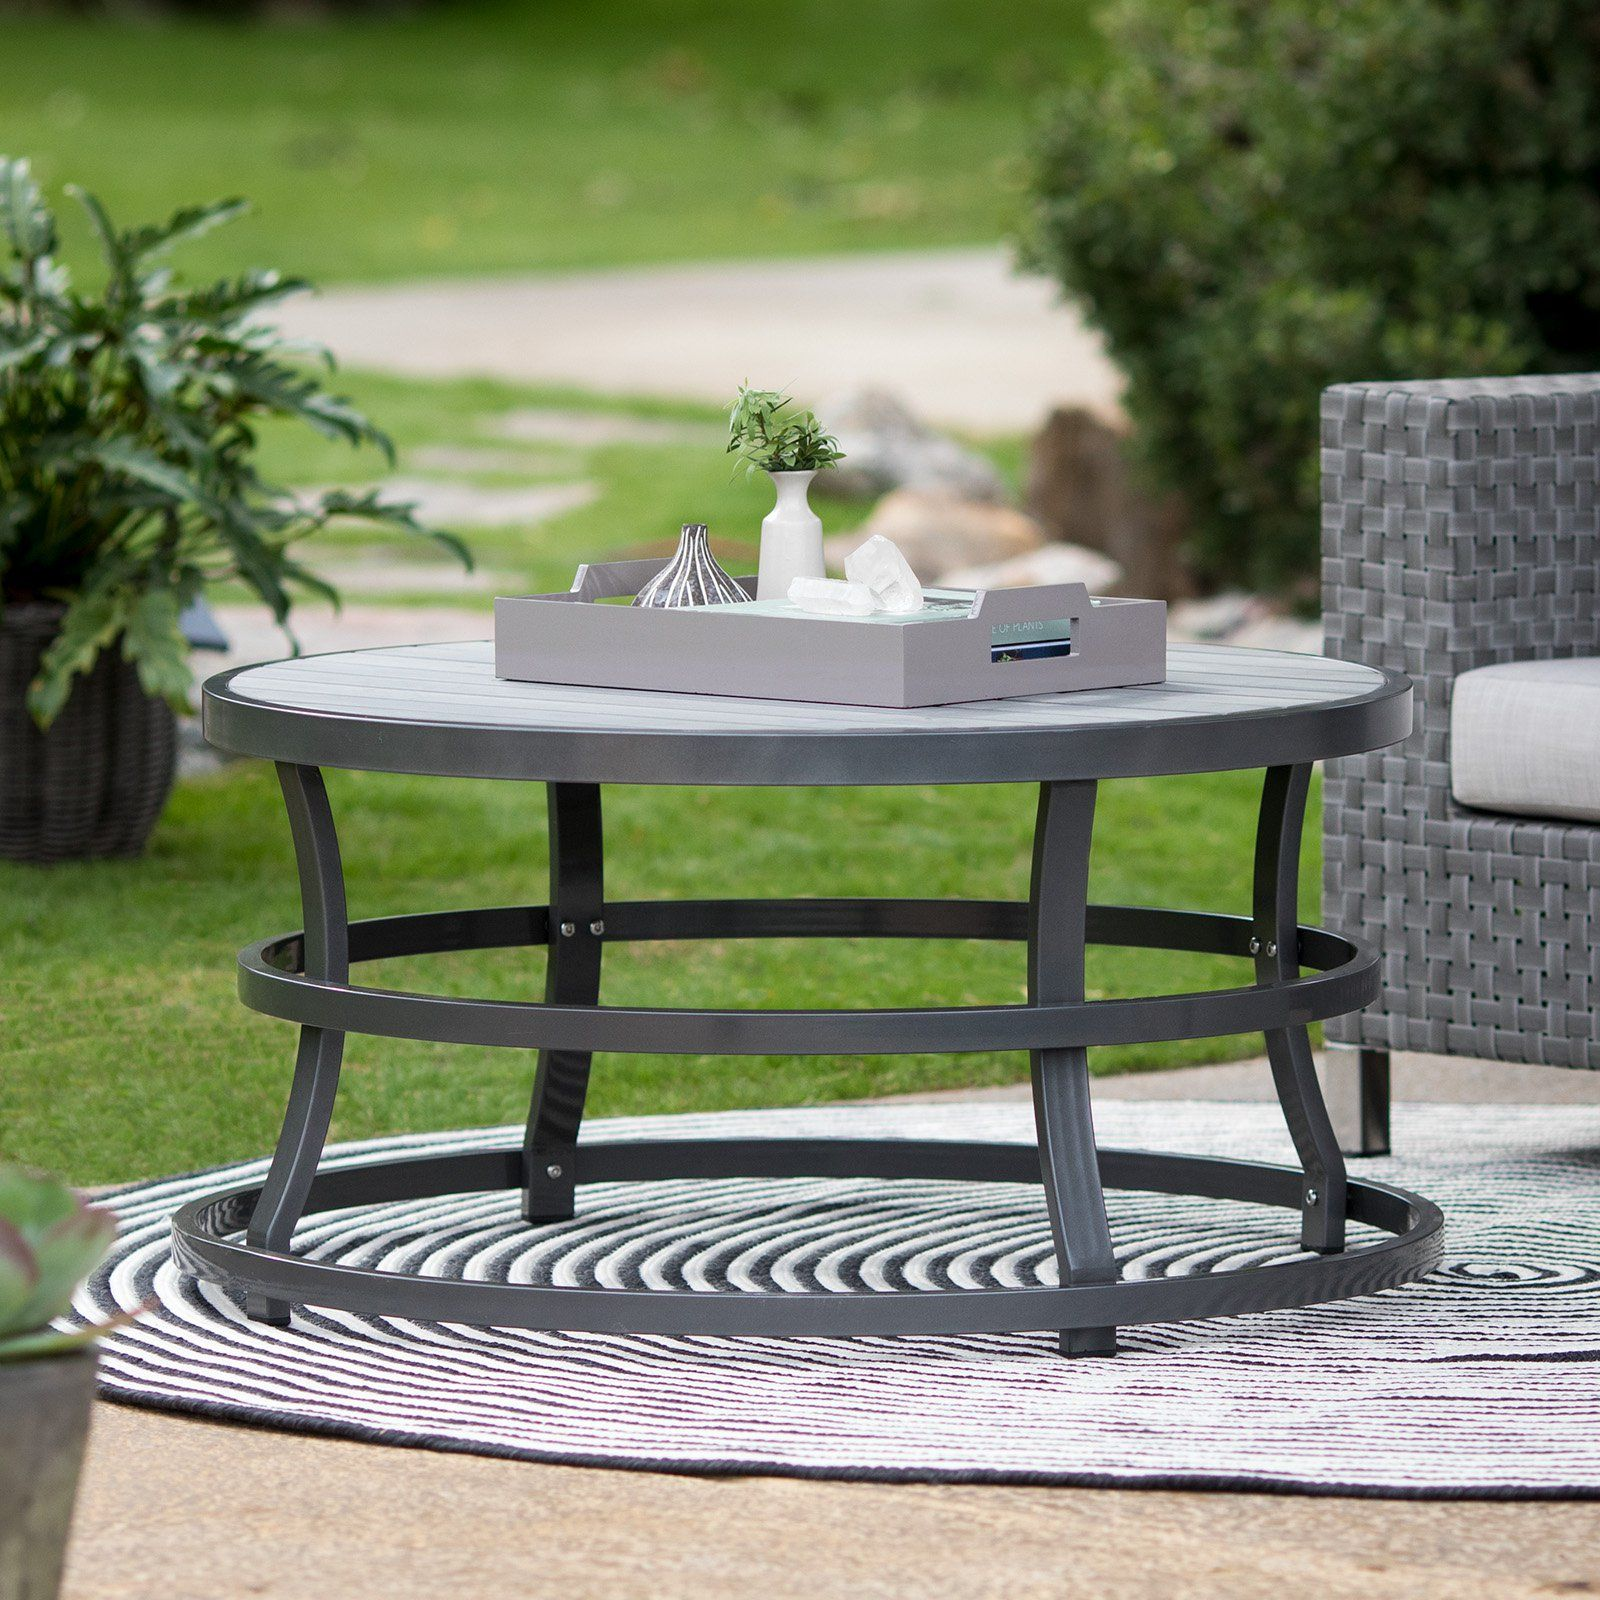 Belham Living Sona Faux Wood Round Outdoor Coffee Table